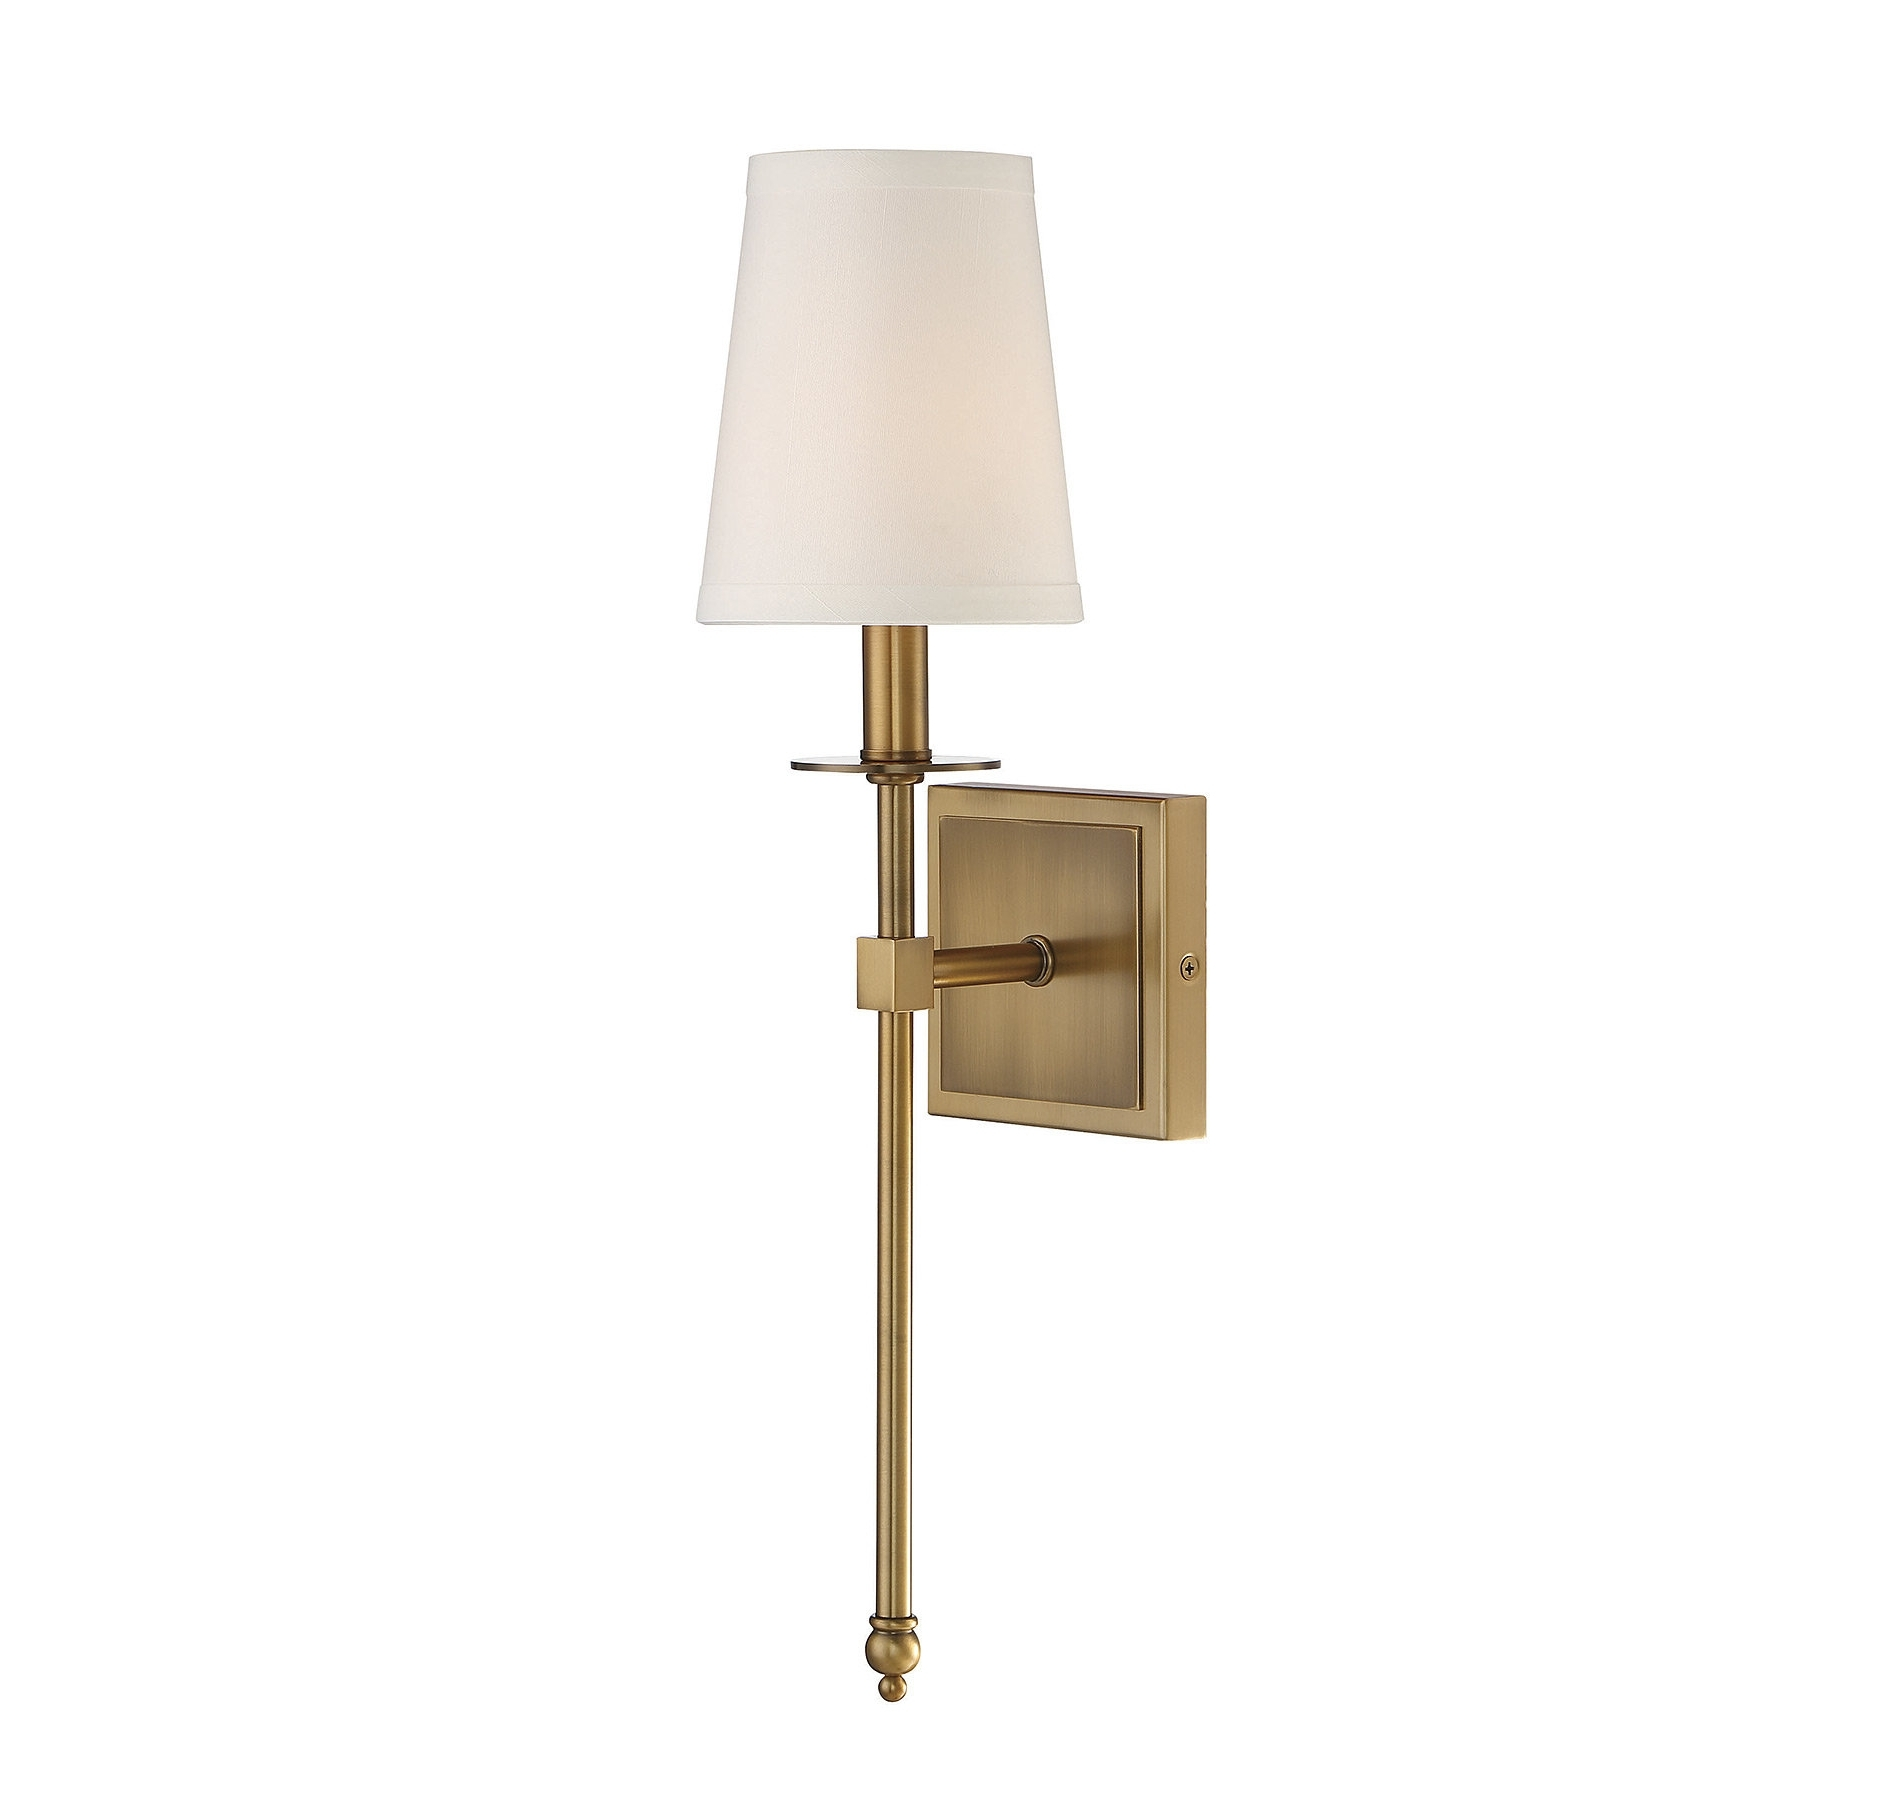 Preferred Mid Century Modern Sconces You'll Love (View 16 of 20)